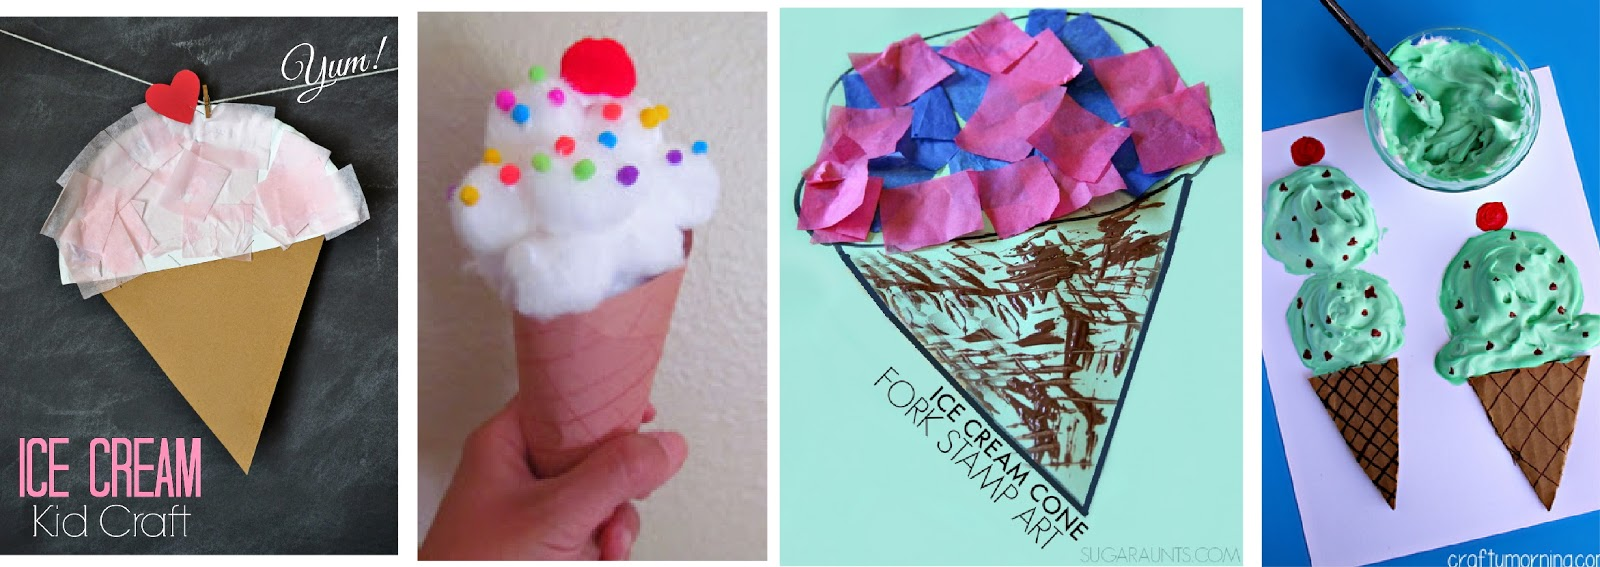 Ice Cream Crafts Kids Activities